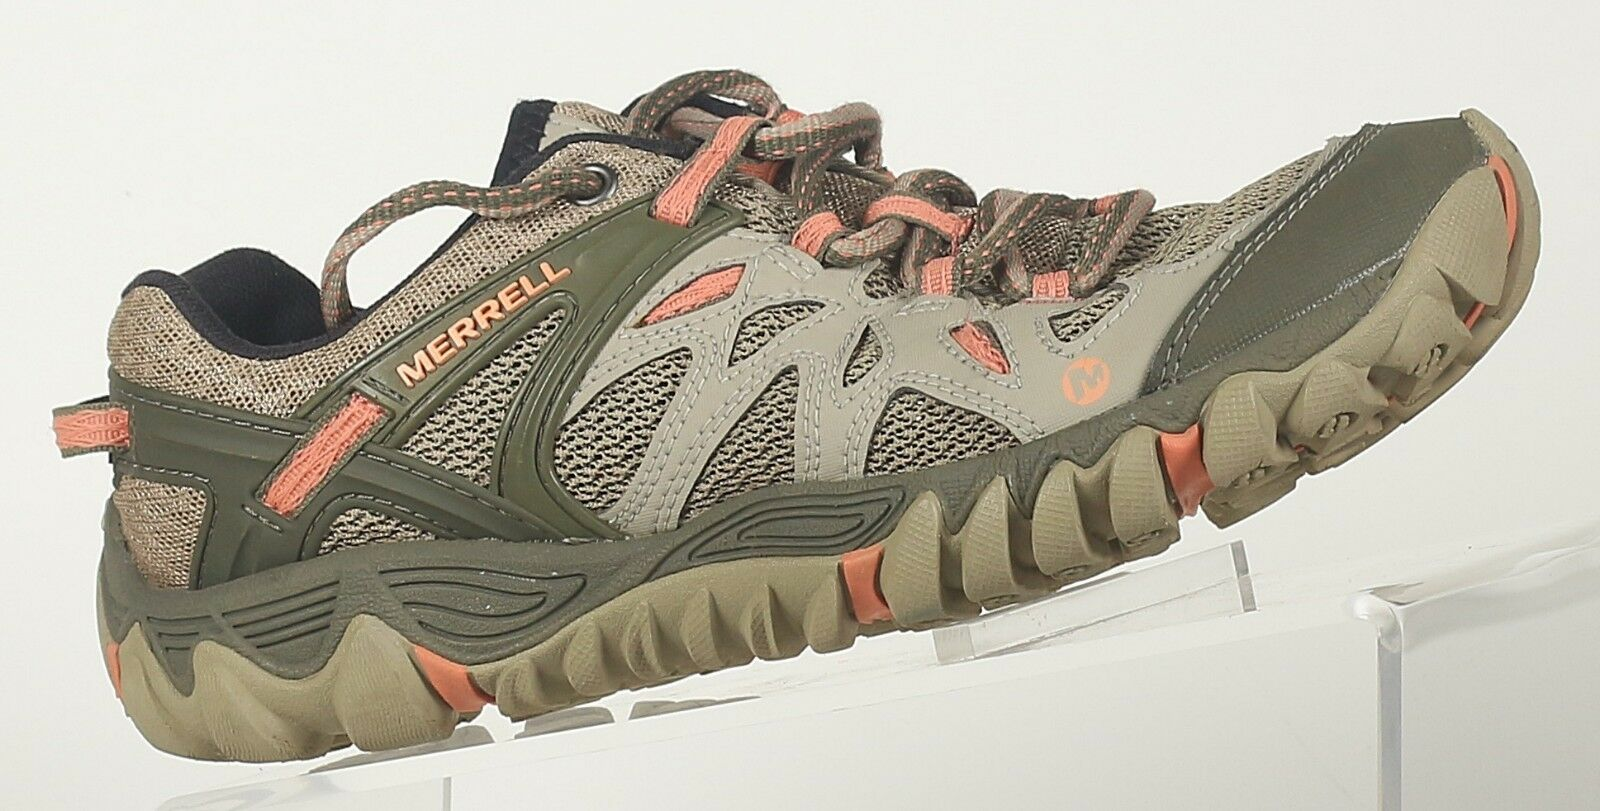 Merrell Women's  size 7 All Out Blaze Aero Sport Hiking Water shoes Beige Khaki  authentic quality